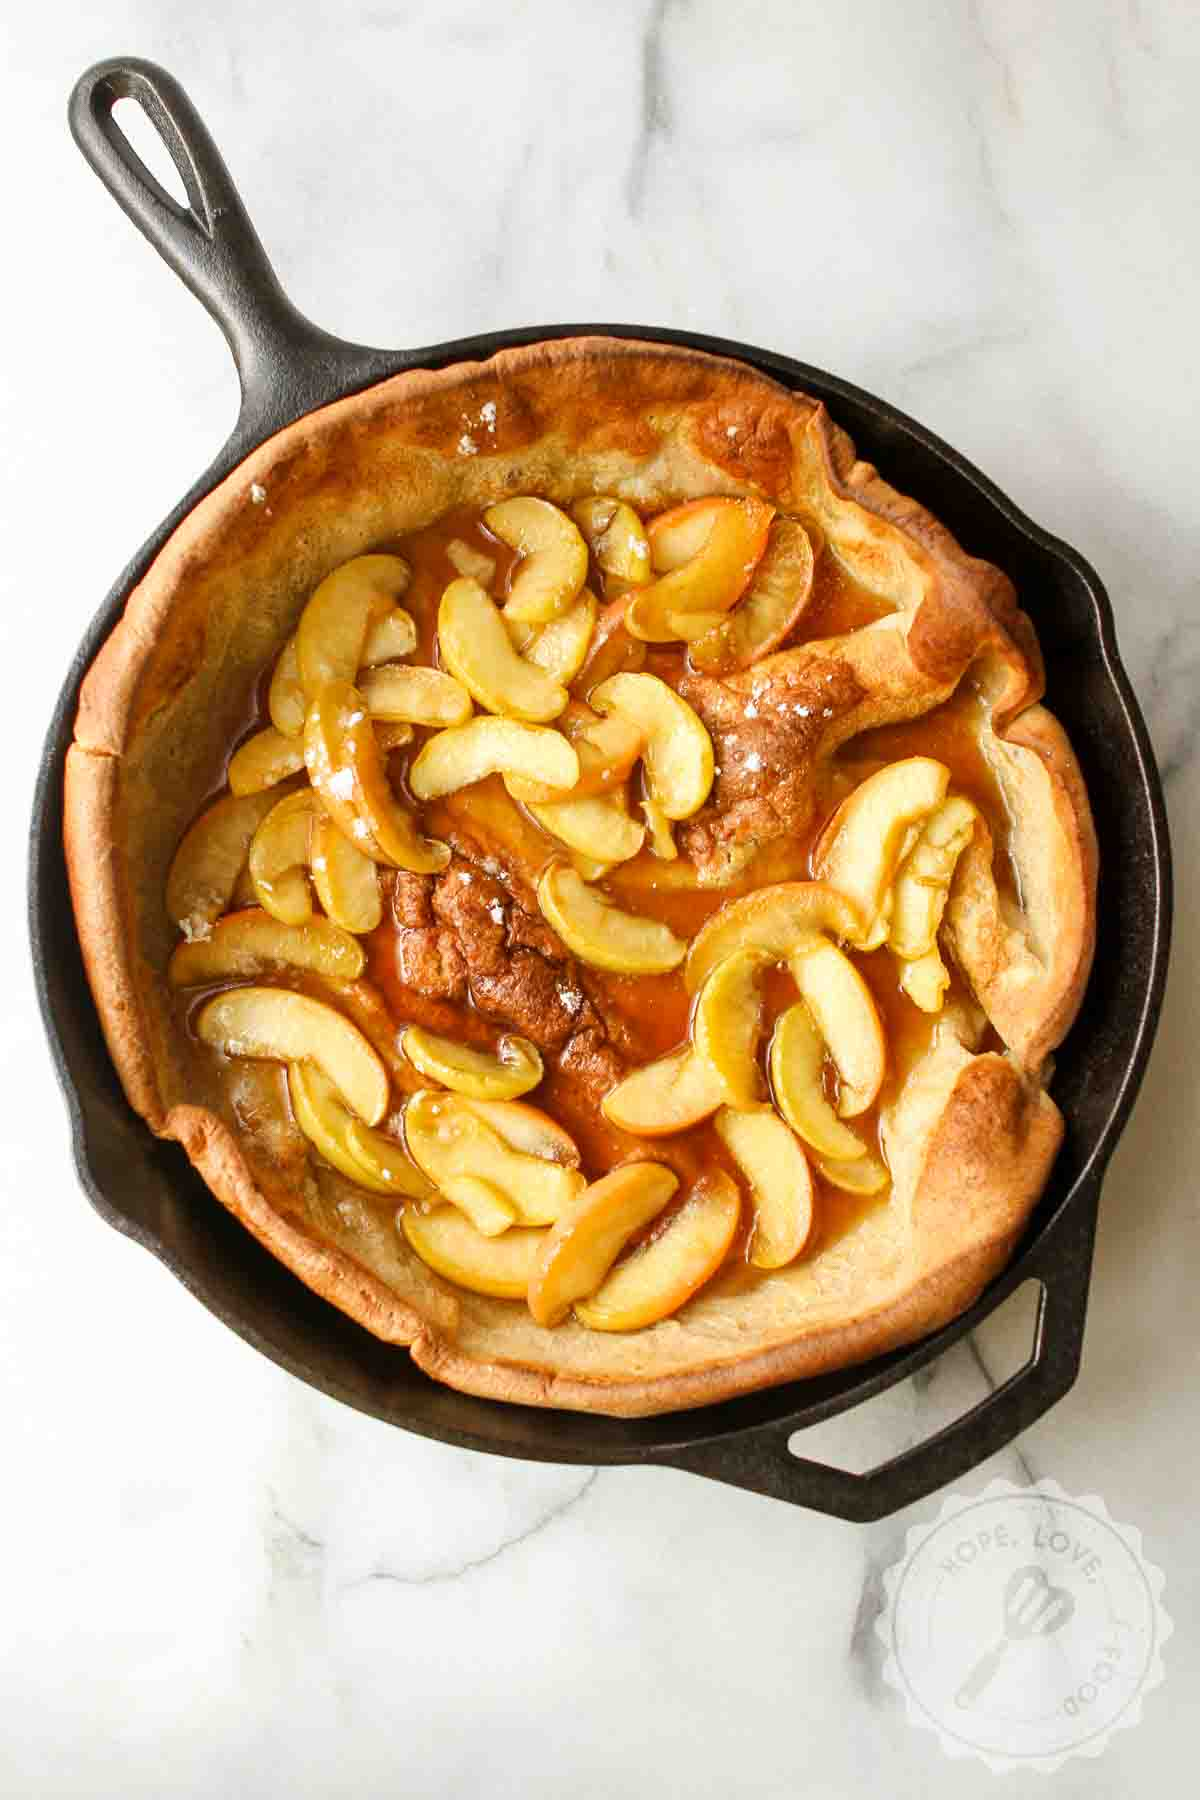 Apple Dutch baby in cast-iron skillet.